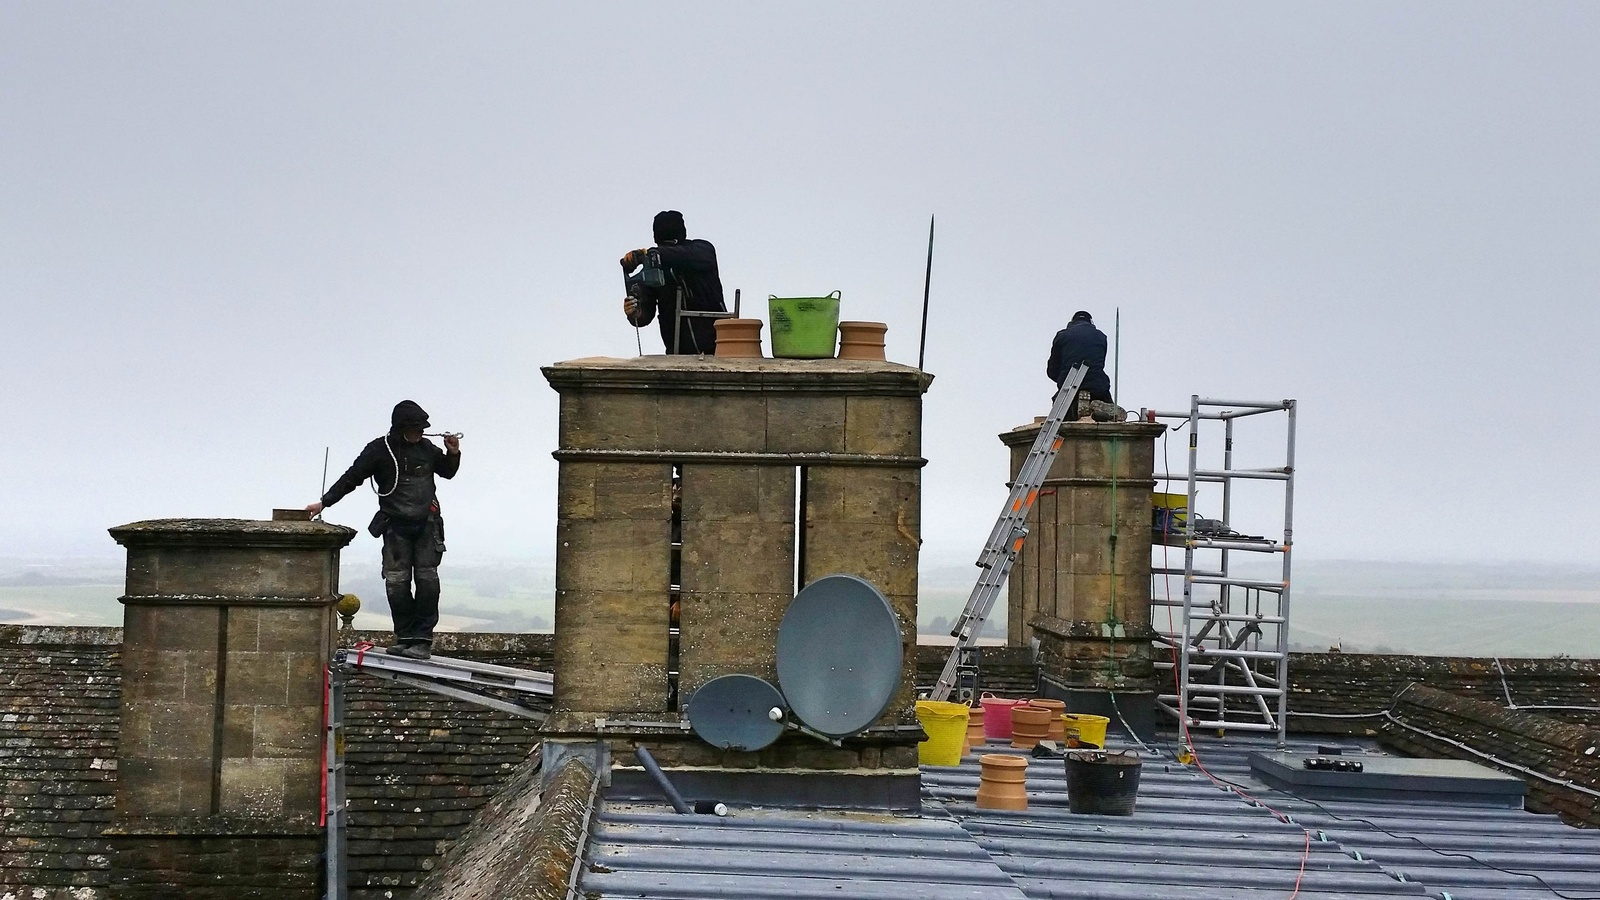 The team work hard to ensure works are carried out carefully and safely.